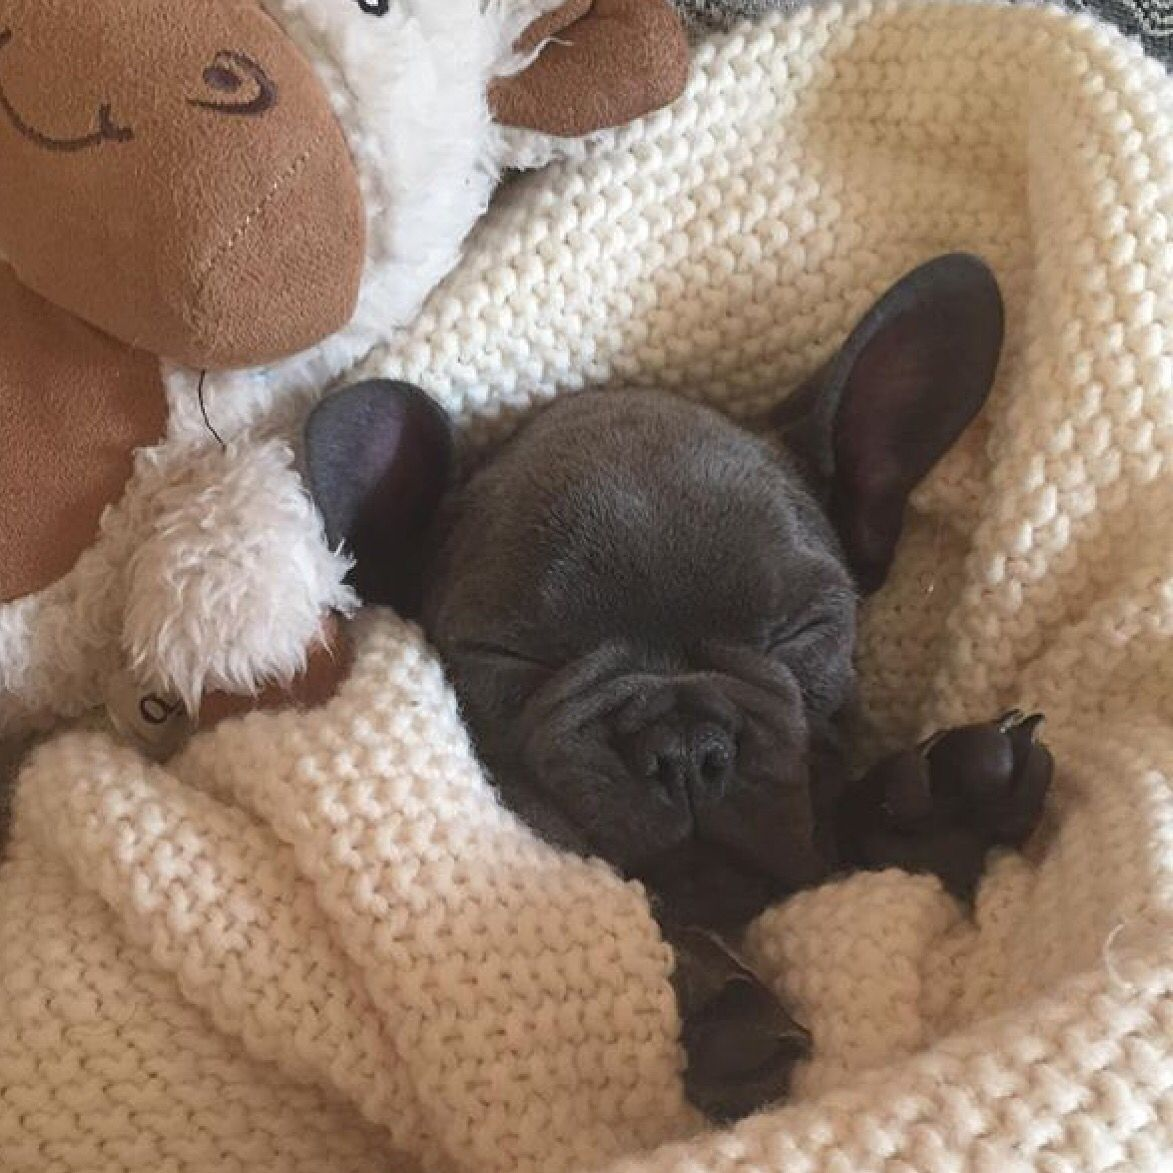 Shhh The Baby S Sleeping Quot Blue French Bulldog Puppy Super